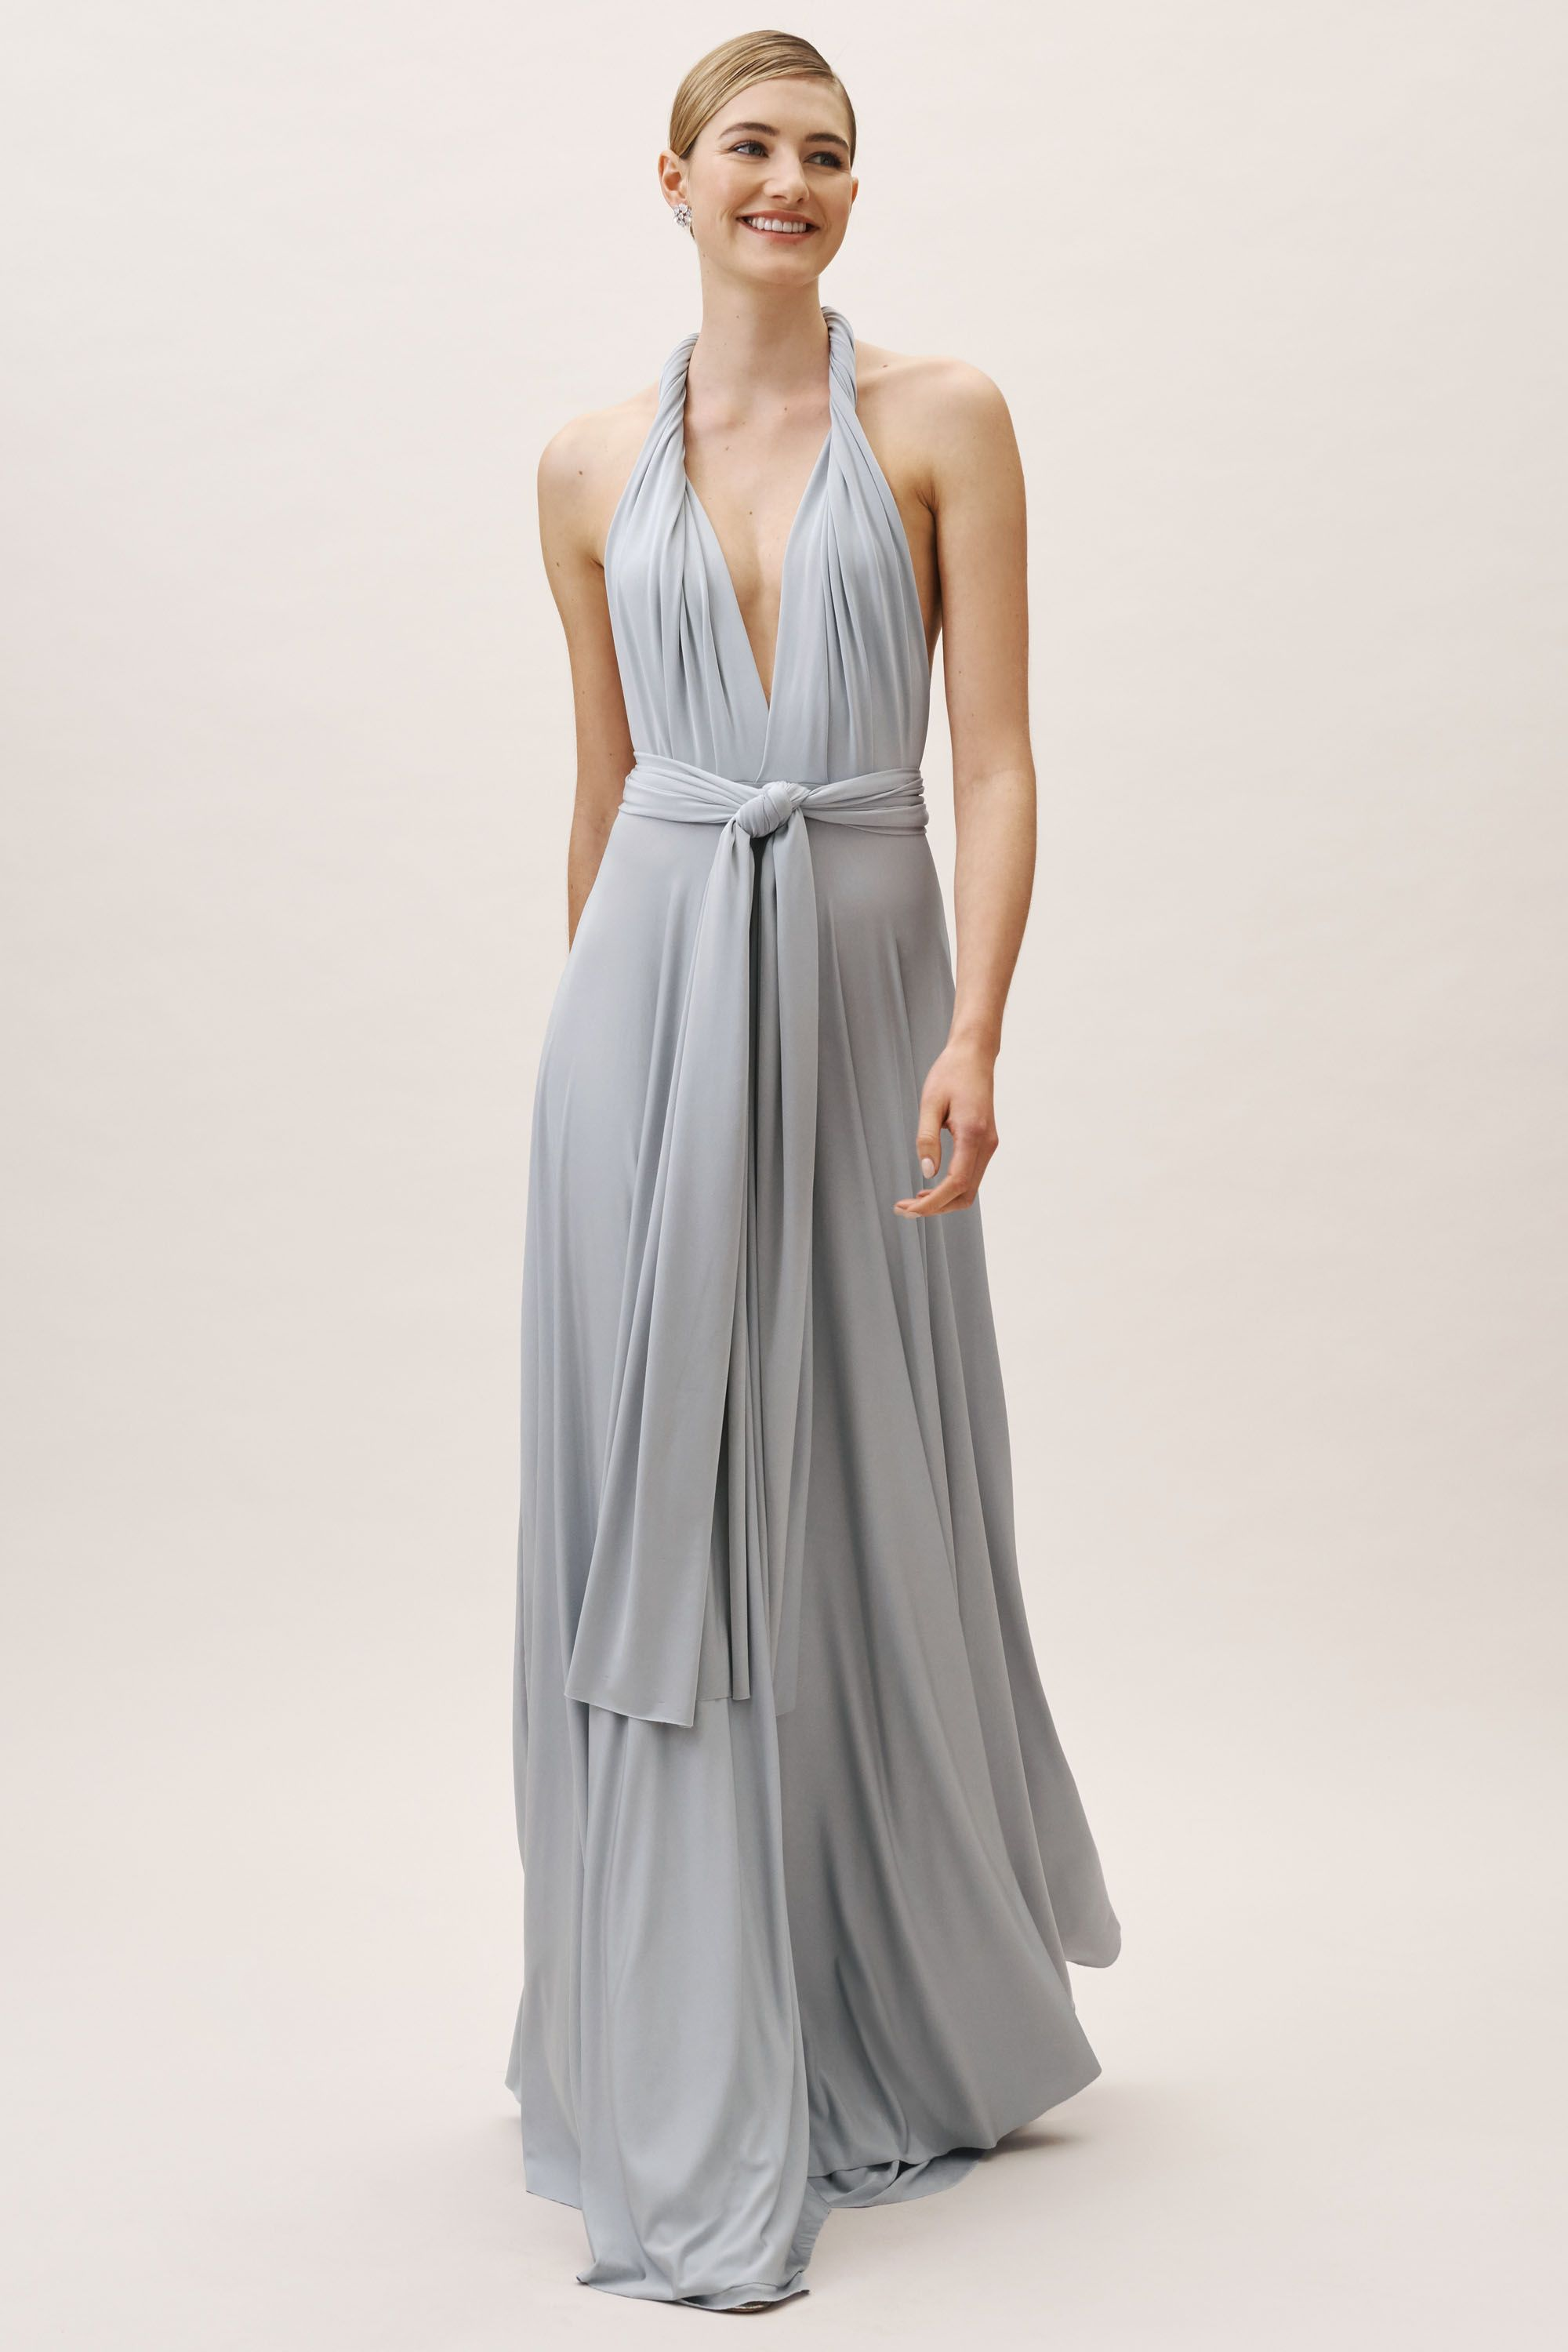 dbab5fa6842 BHLDN's twobirds Ginger Convertible Maxi Dress in Fog